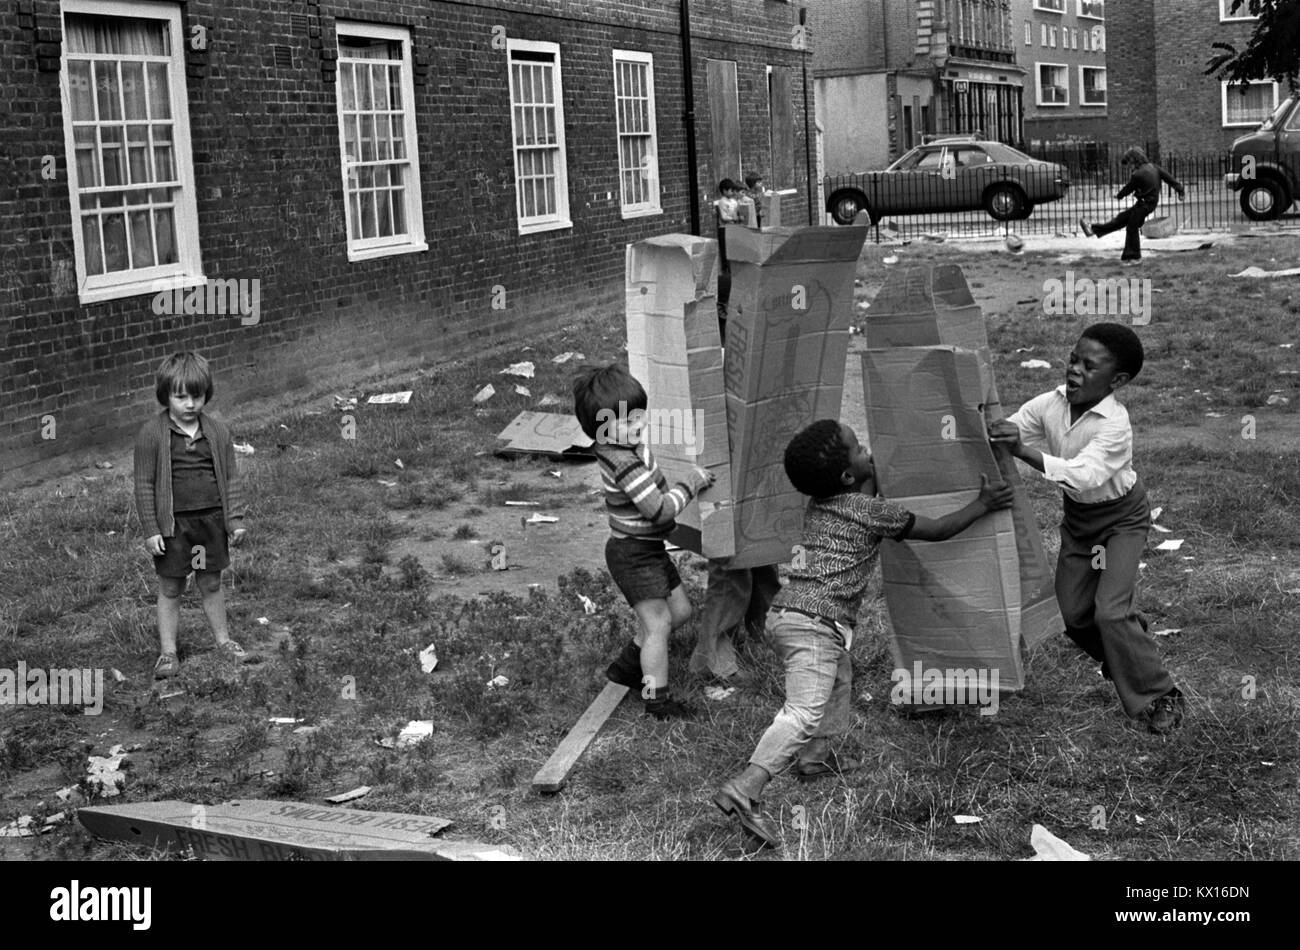 Preteen group of boys playing  together on their council estate South London 1970s Britain  70s UK HOMER SYKES Stock Photo